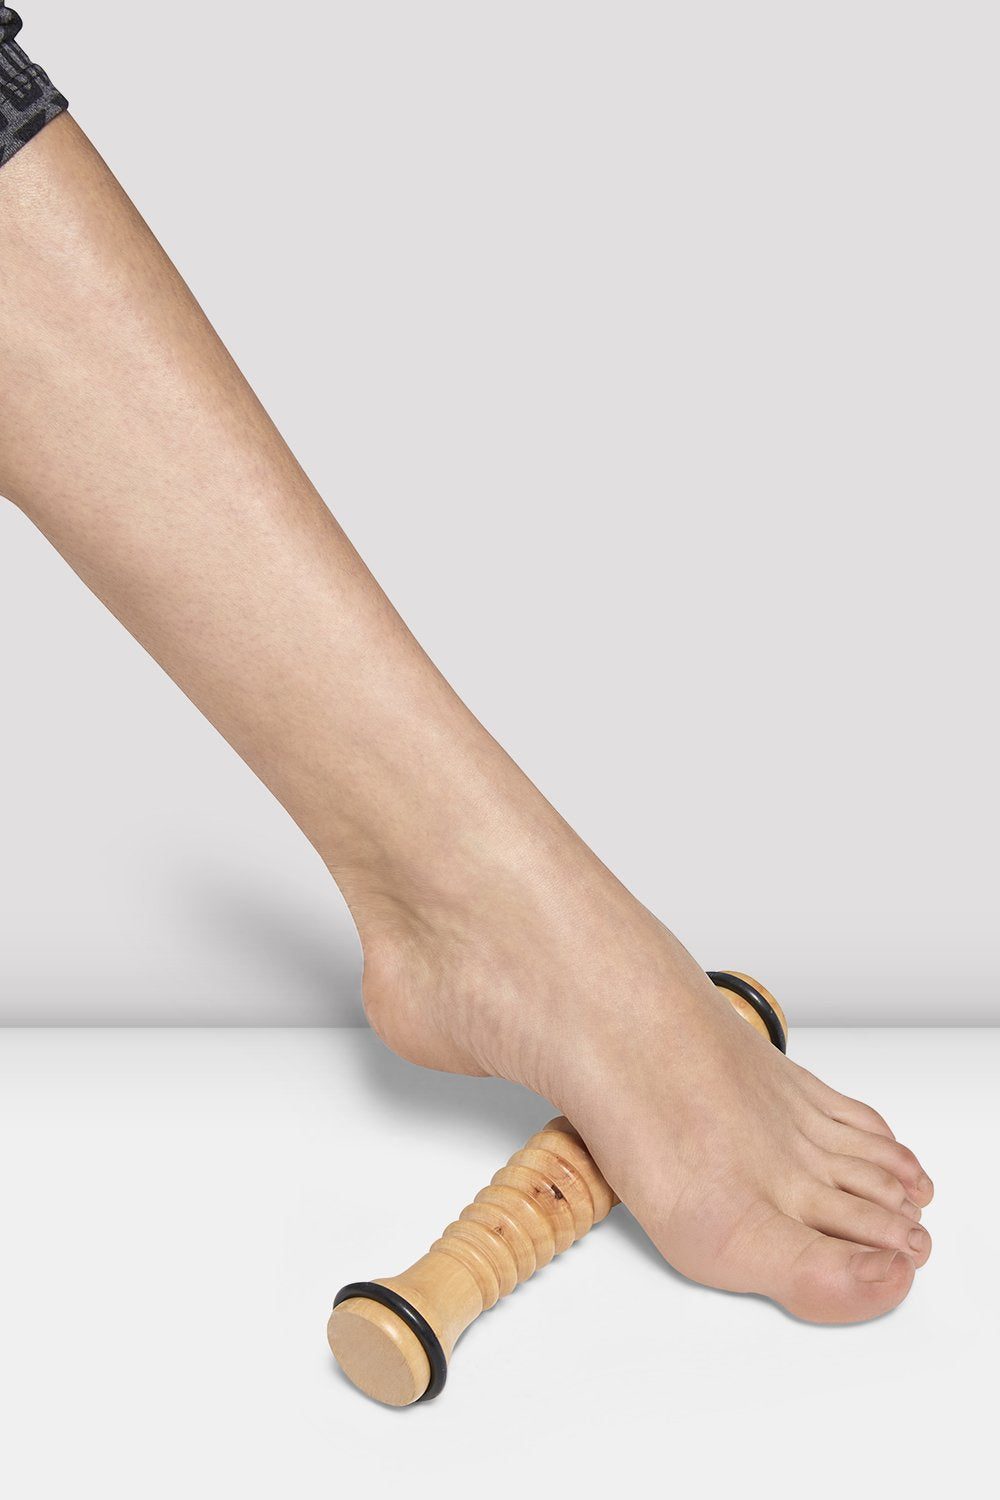 Wood Bloch Foot Roller used on foot